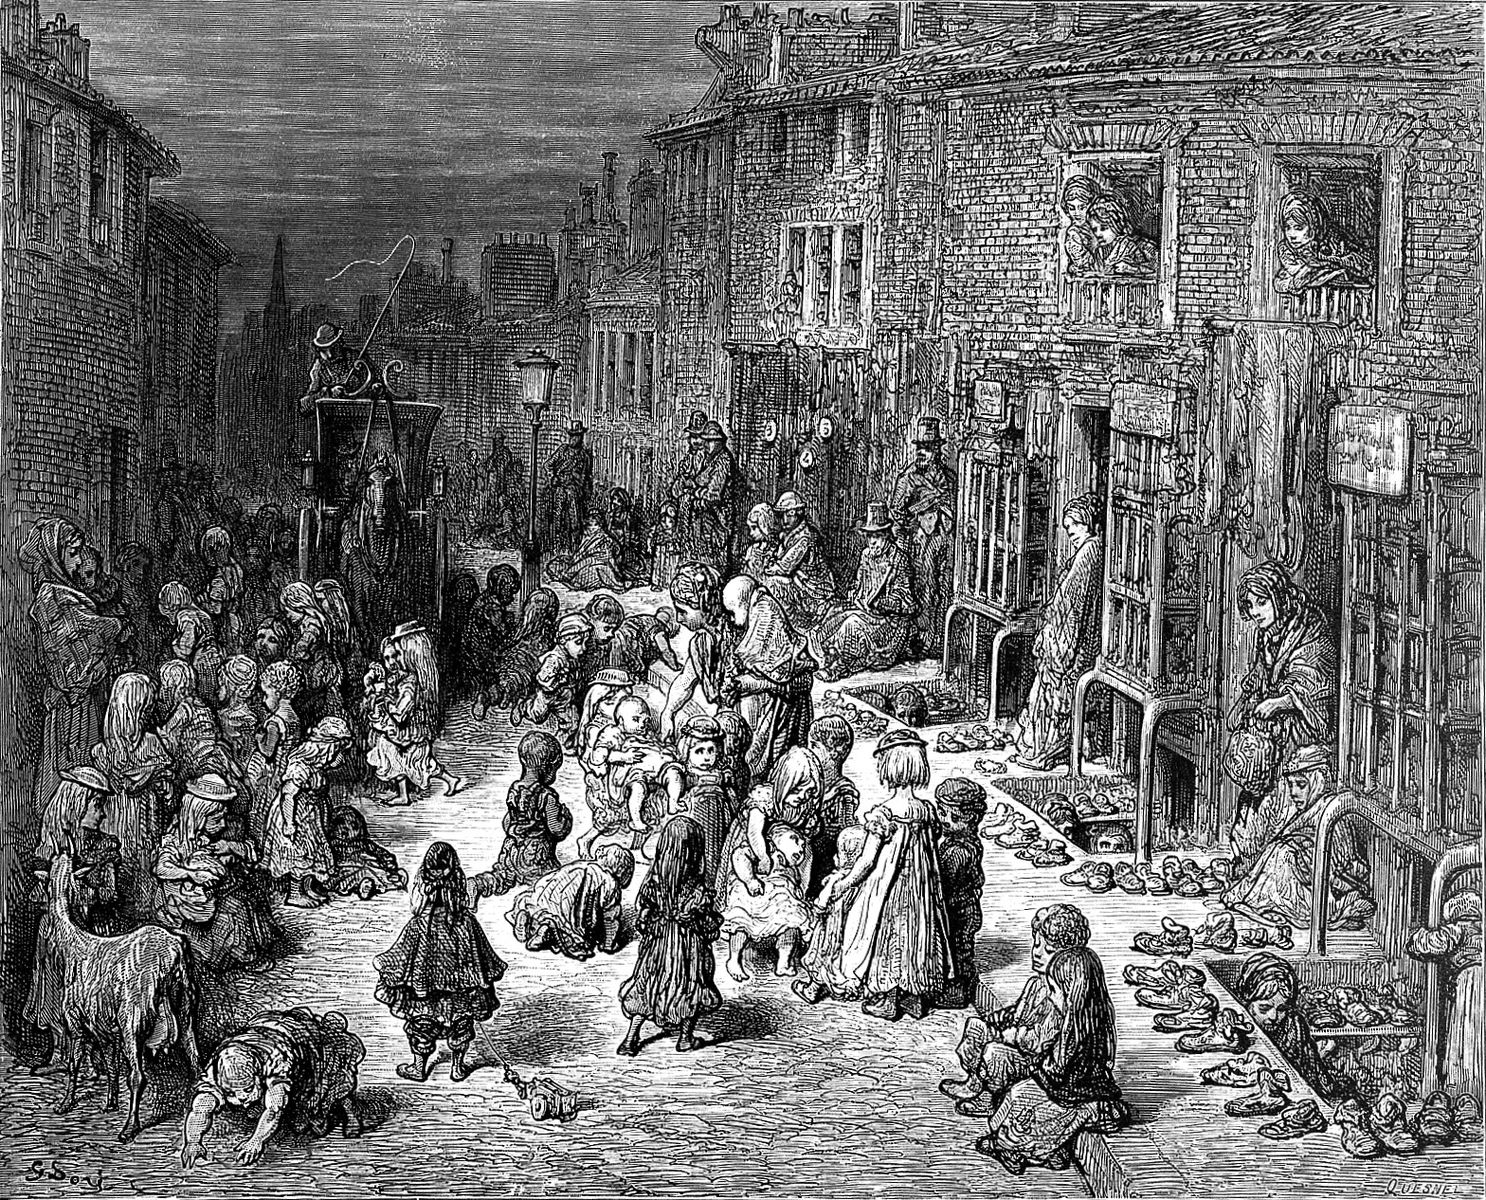 London Slums: Dudley Street